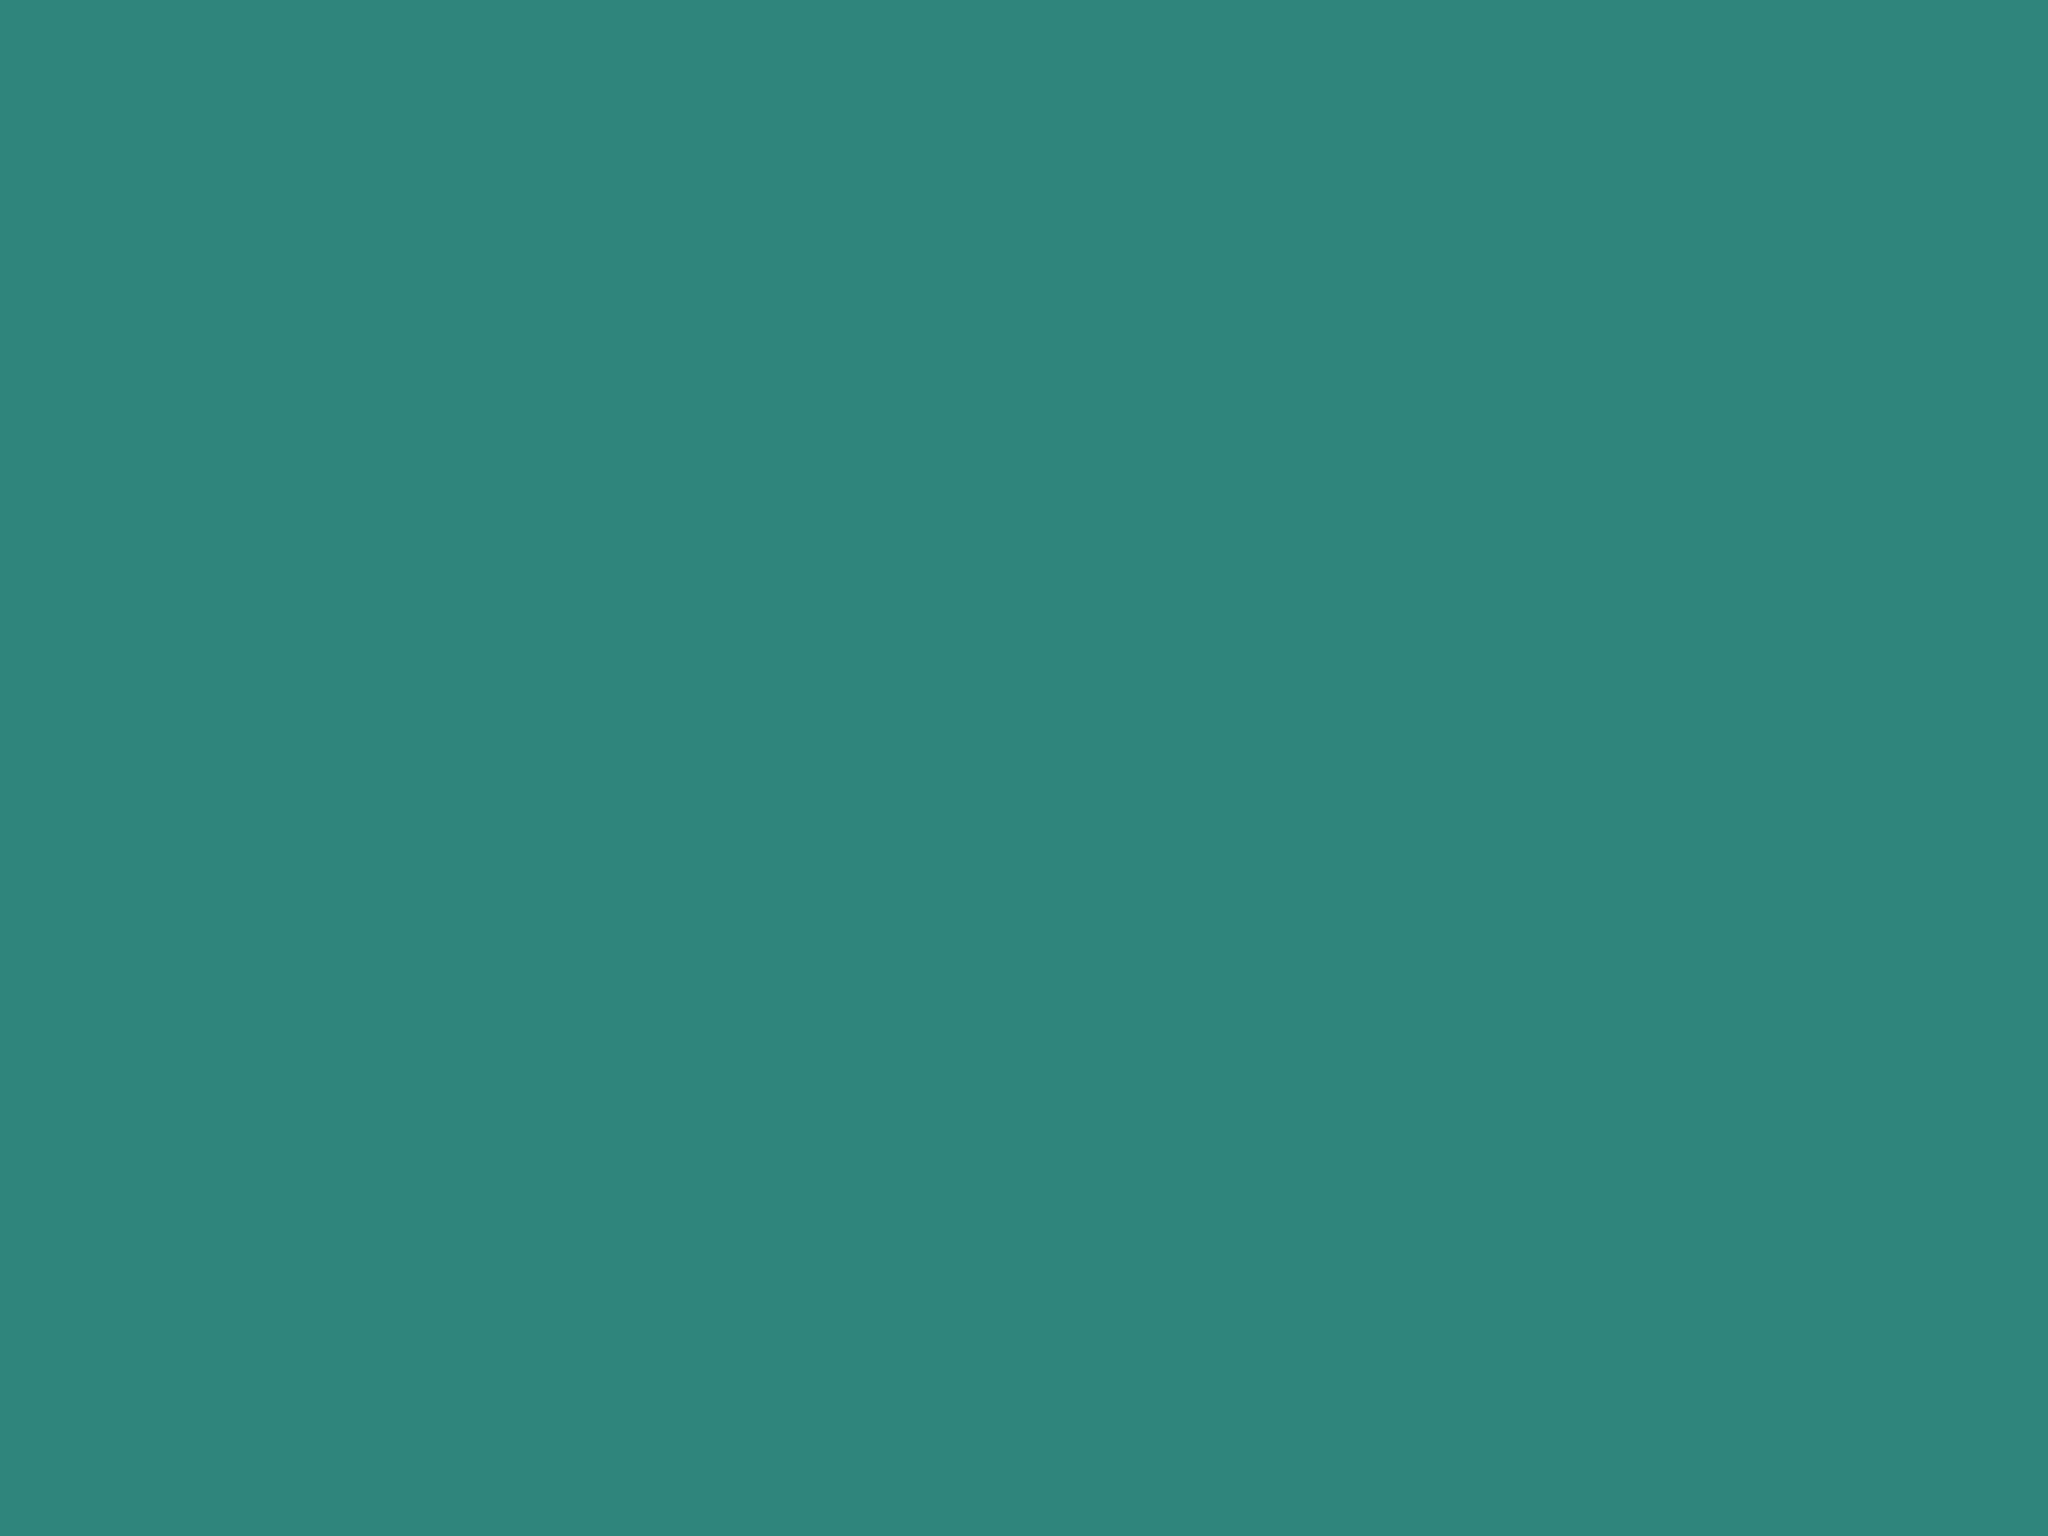 2048x1536 Celadon Green Solid Color Background